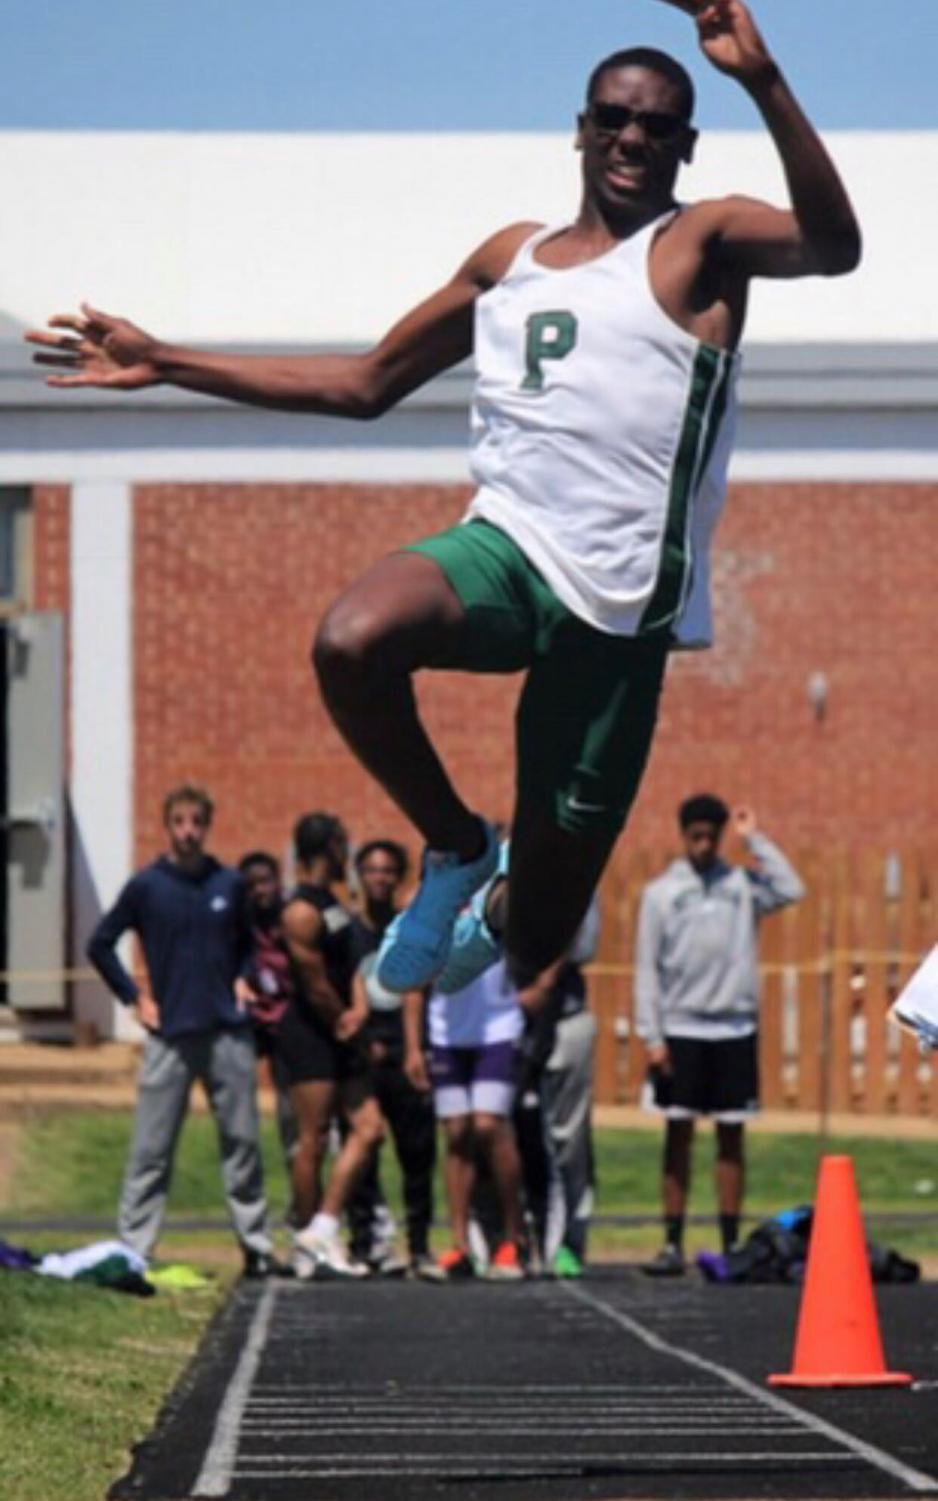 Senior Michael Jackson competes in a jumping event during a track meet.